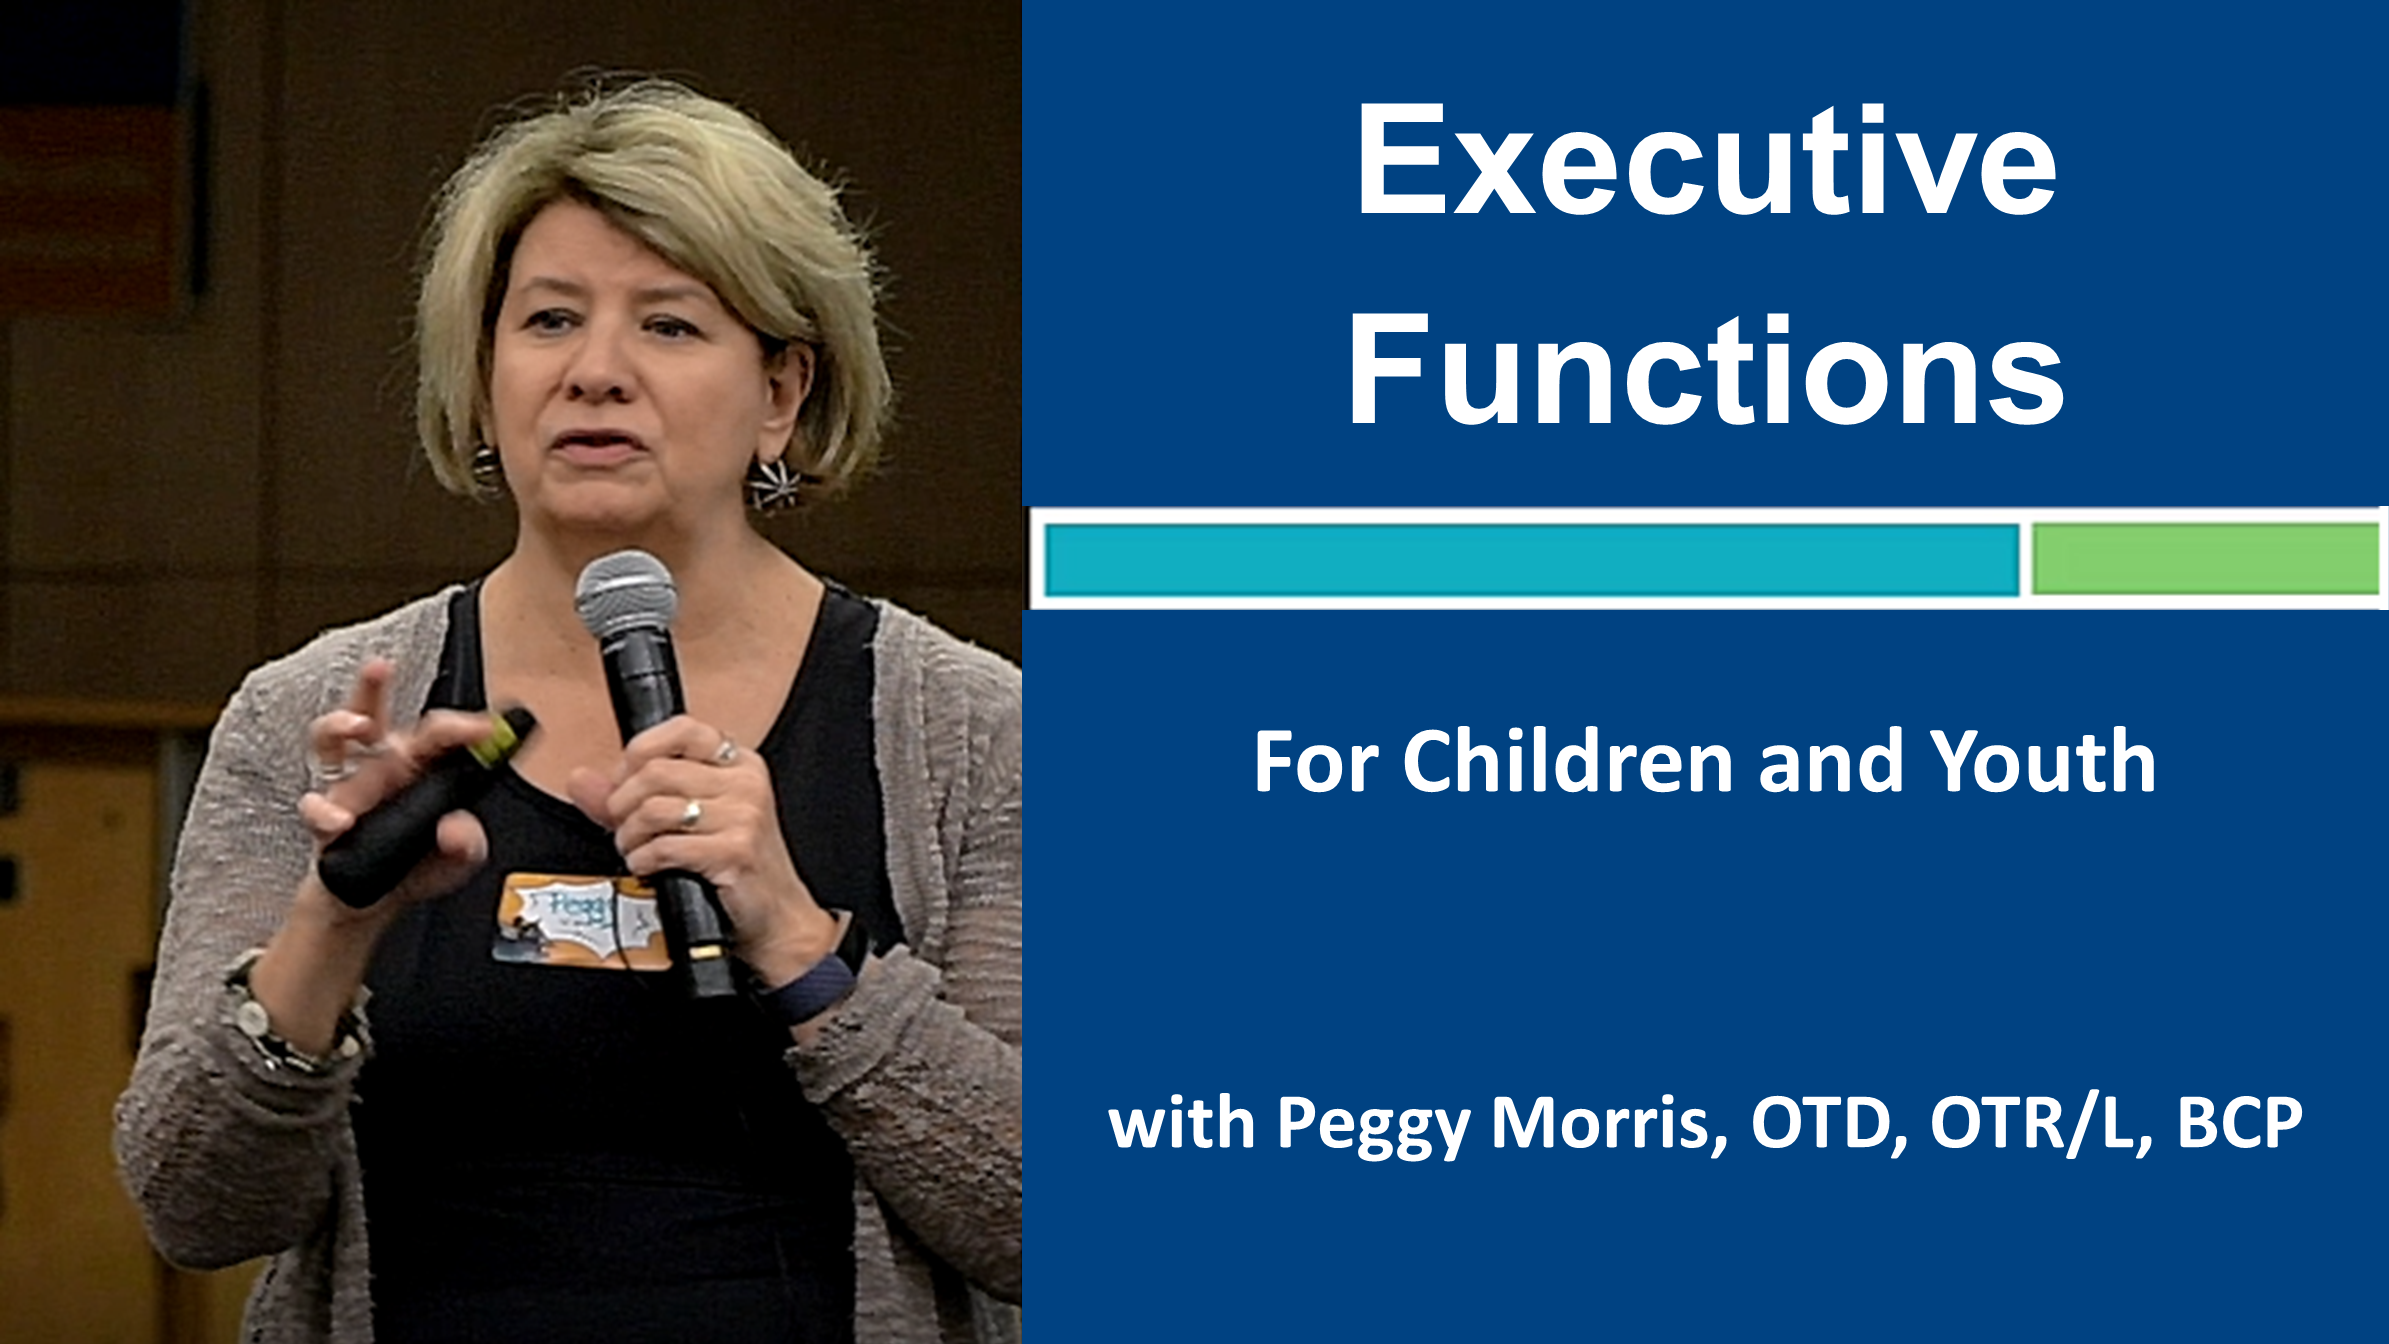 Webinar 5: Executive Functions for Children and Youth with Peggy Morris, OTD, OTR/L, BCP